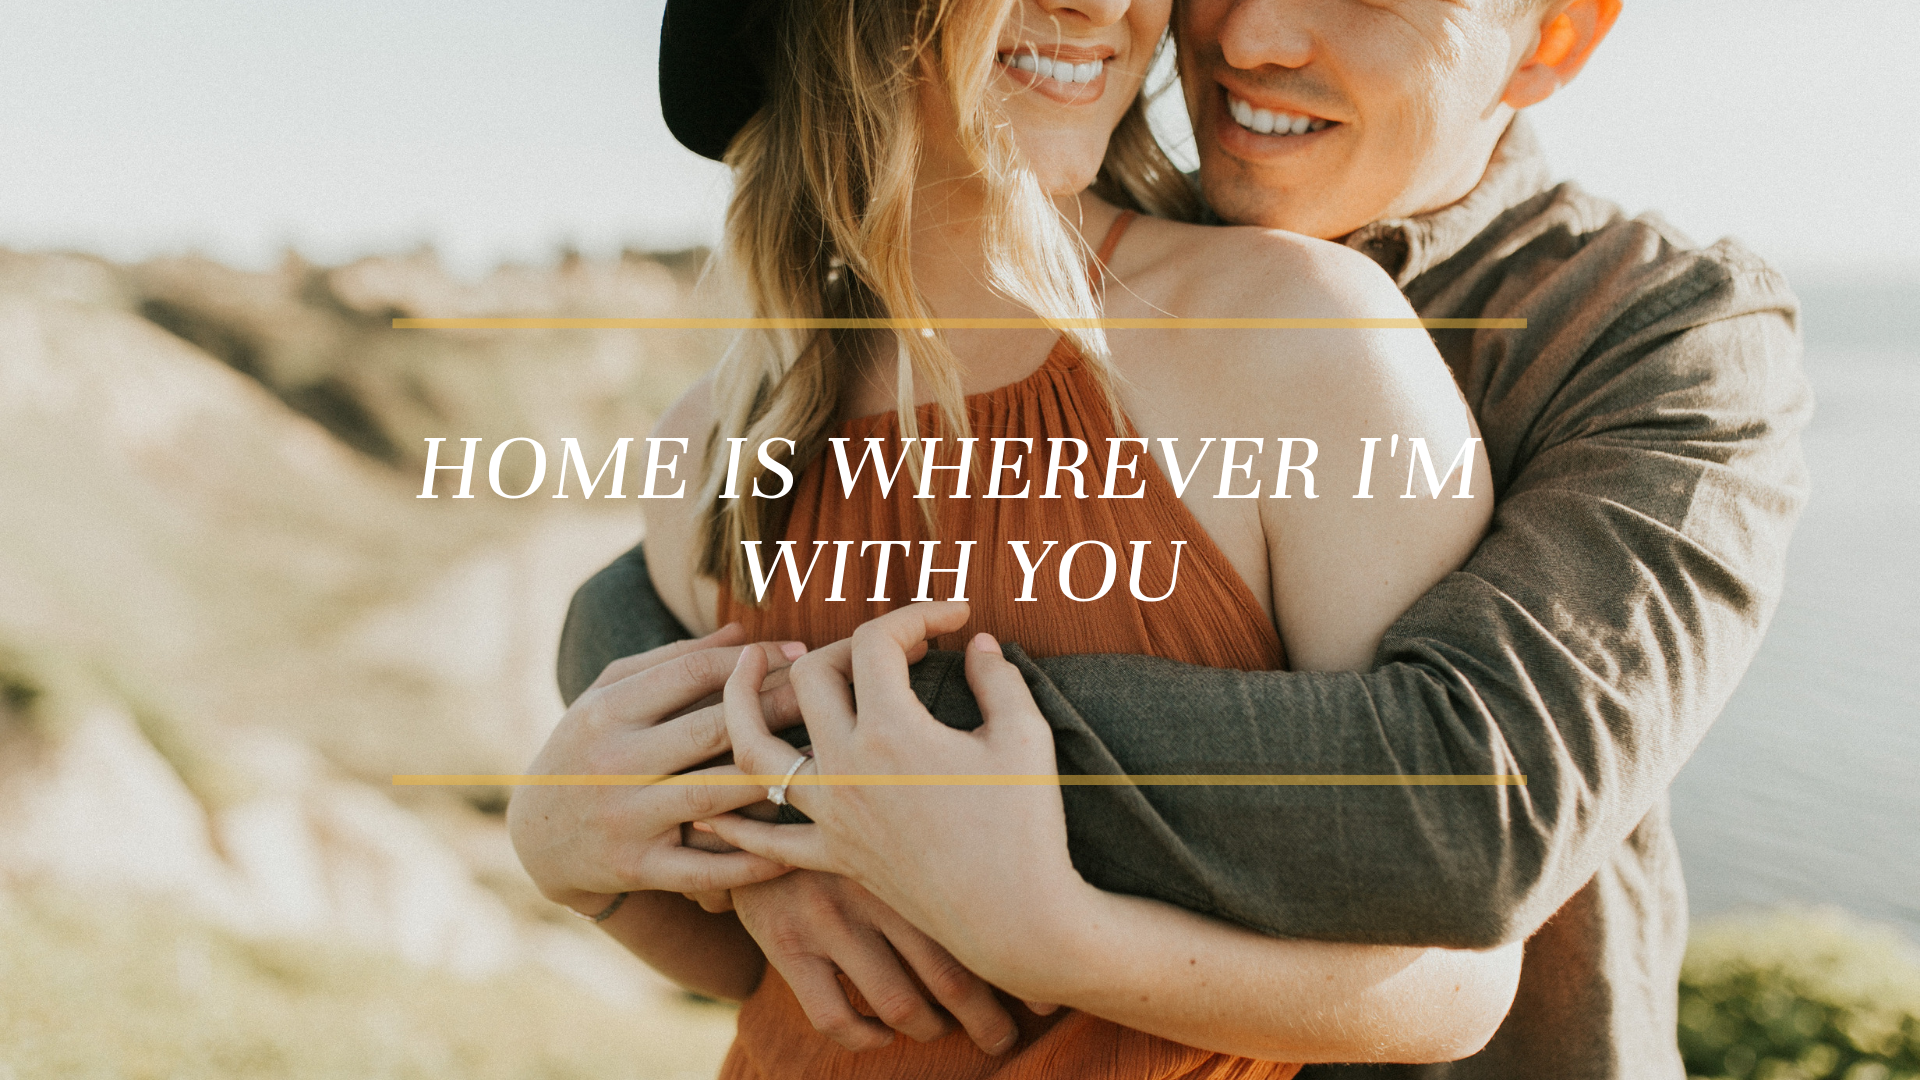 Copy of Home is wherever I'm with you.png